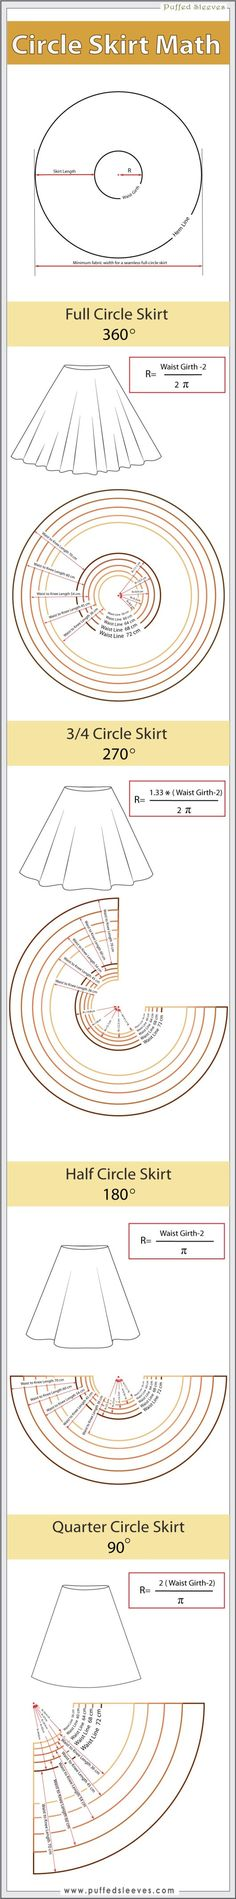 Circle skirt pattern math. Links to more detailed instructions for each type of skirt listed below this infographic on the page.